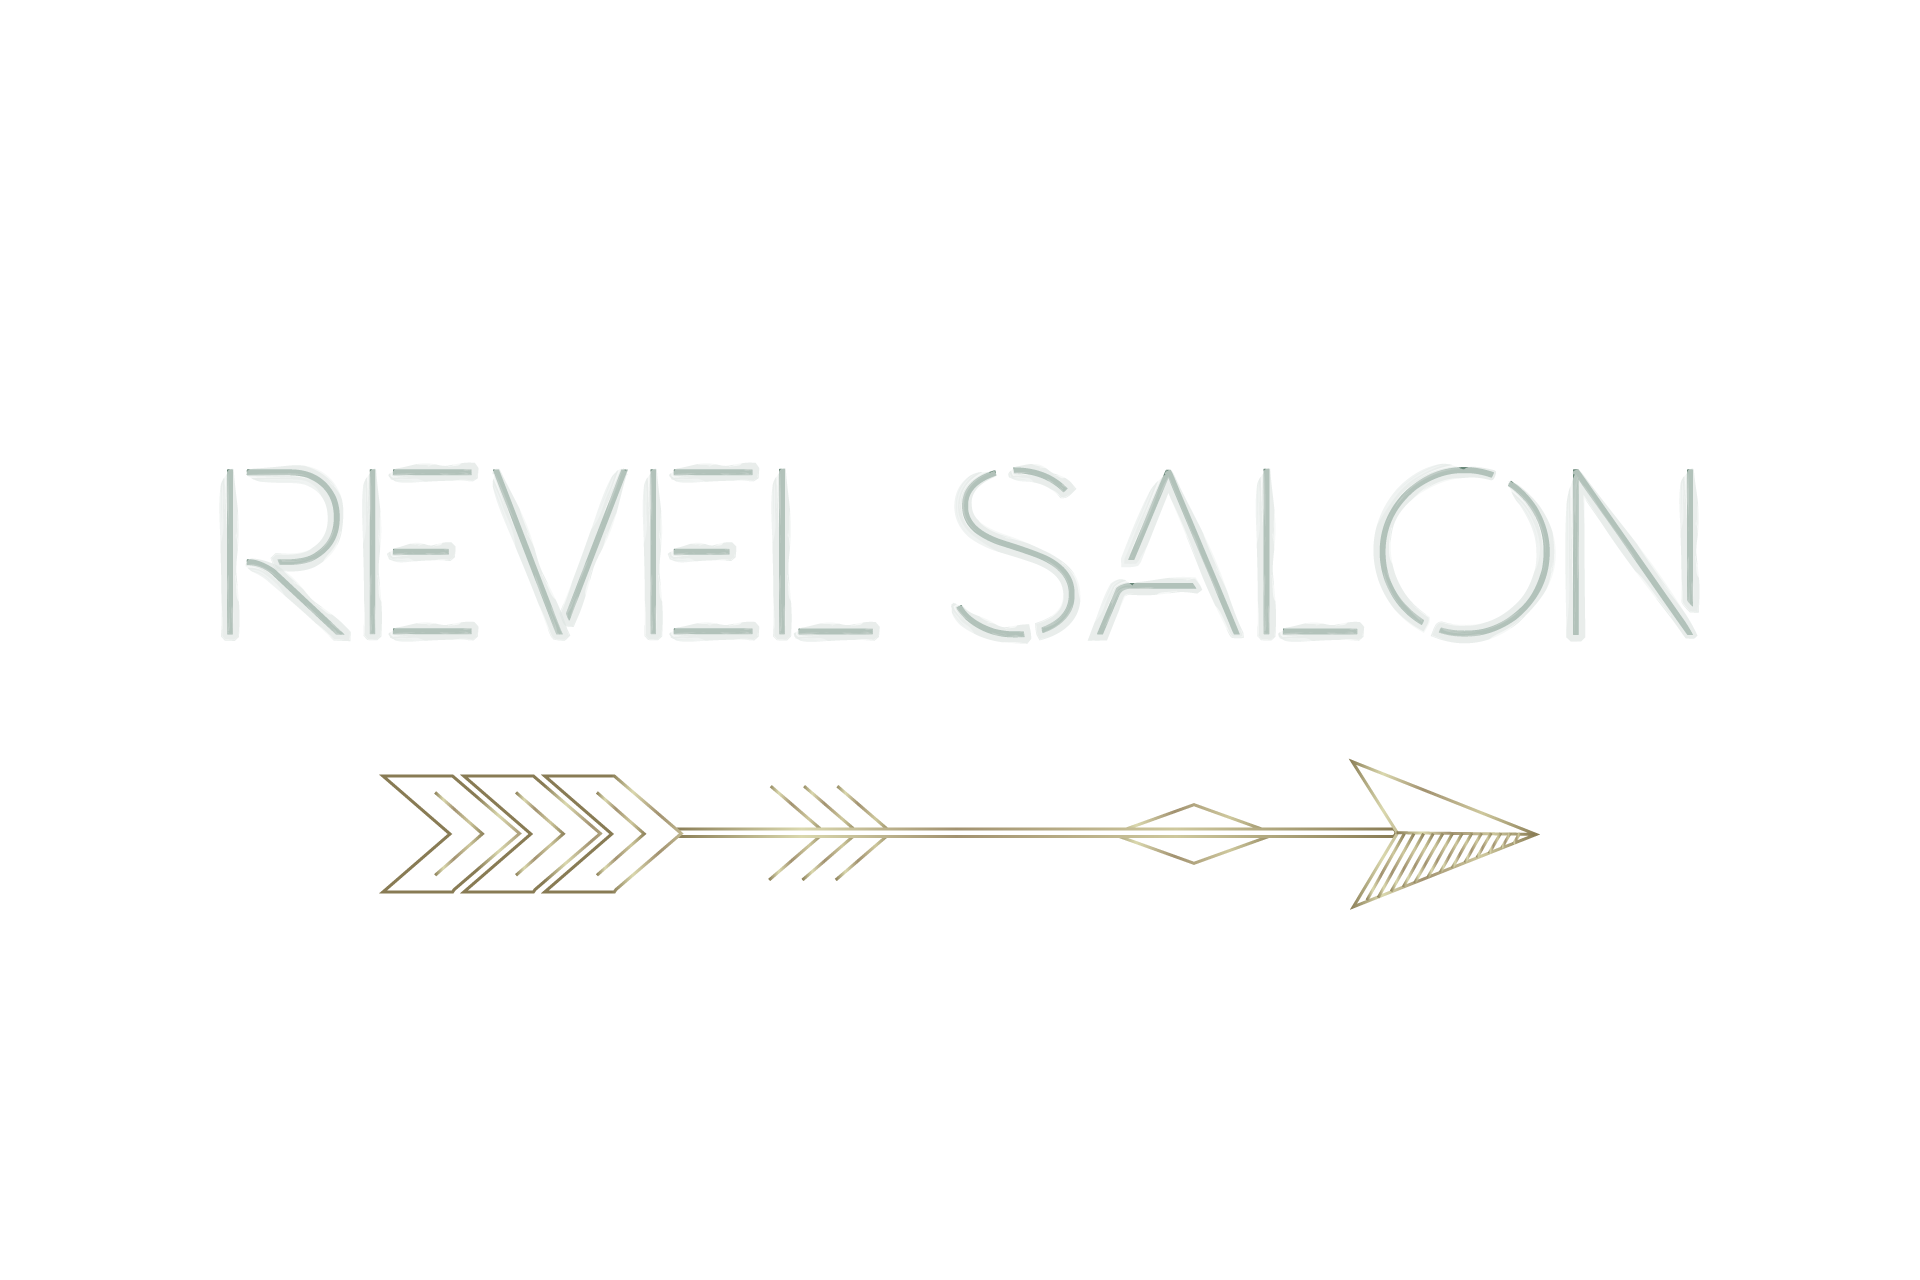 Revel salon in madison wi vagaro for 007 salon madison wi